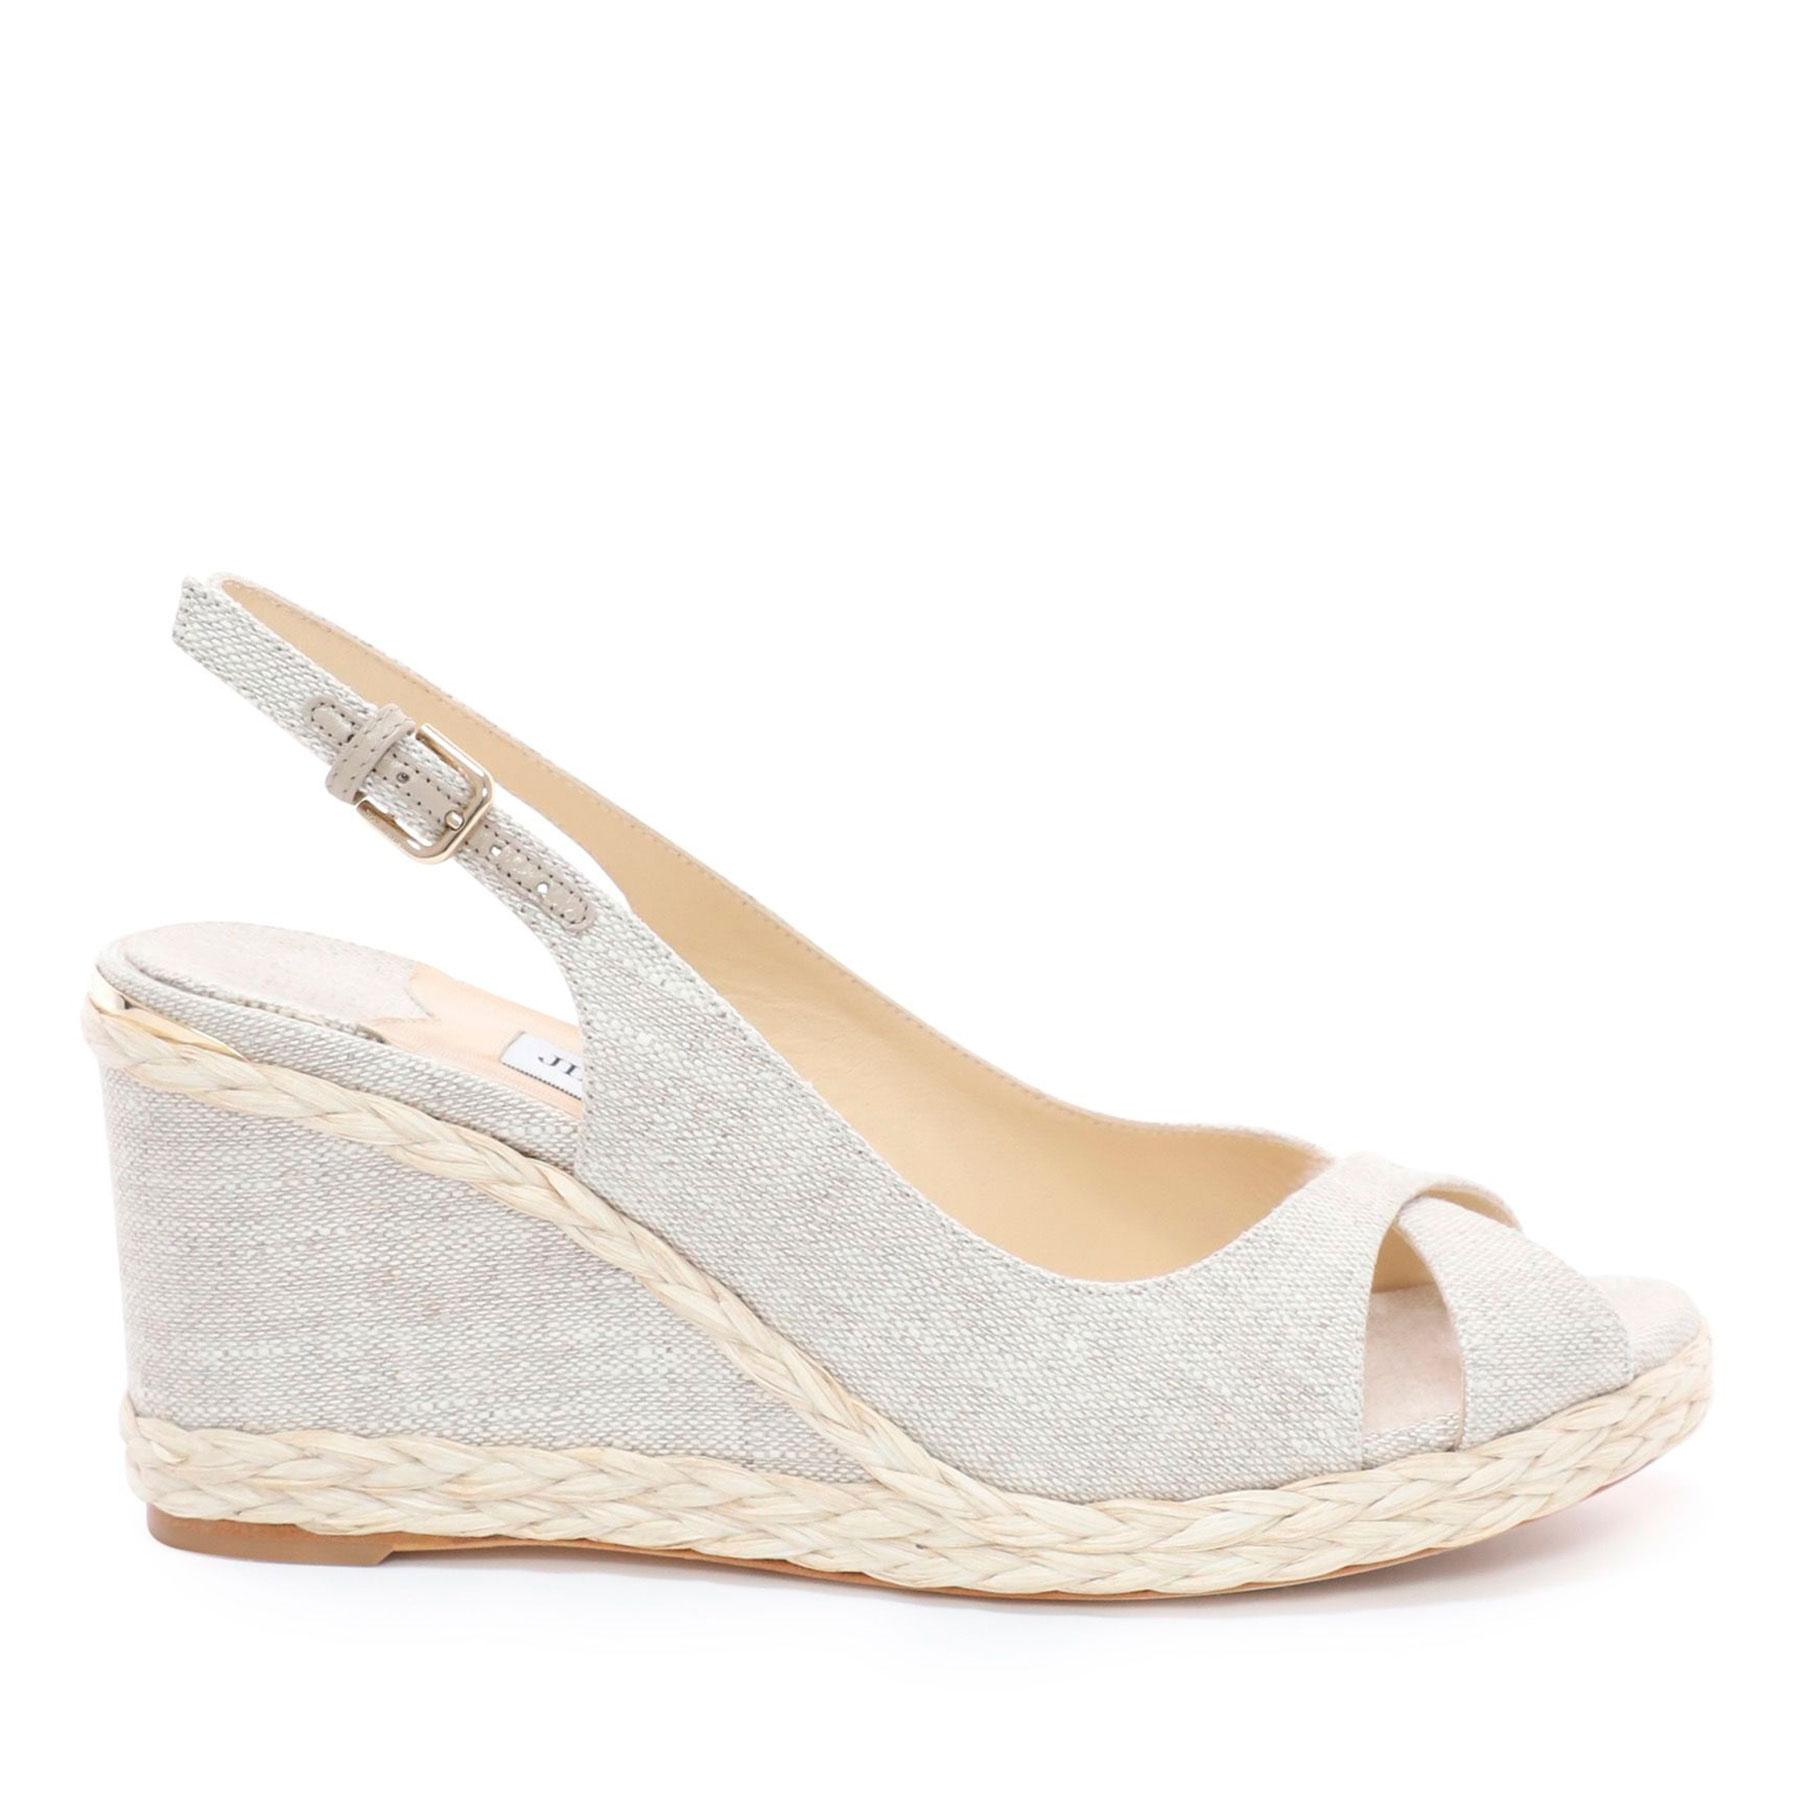 749fee7934 Jimmy Choo Amely 80 Natural Linen Wedges With Braid Trim Natural 34 ...